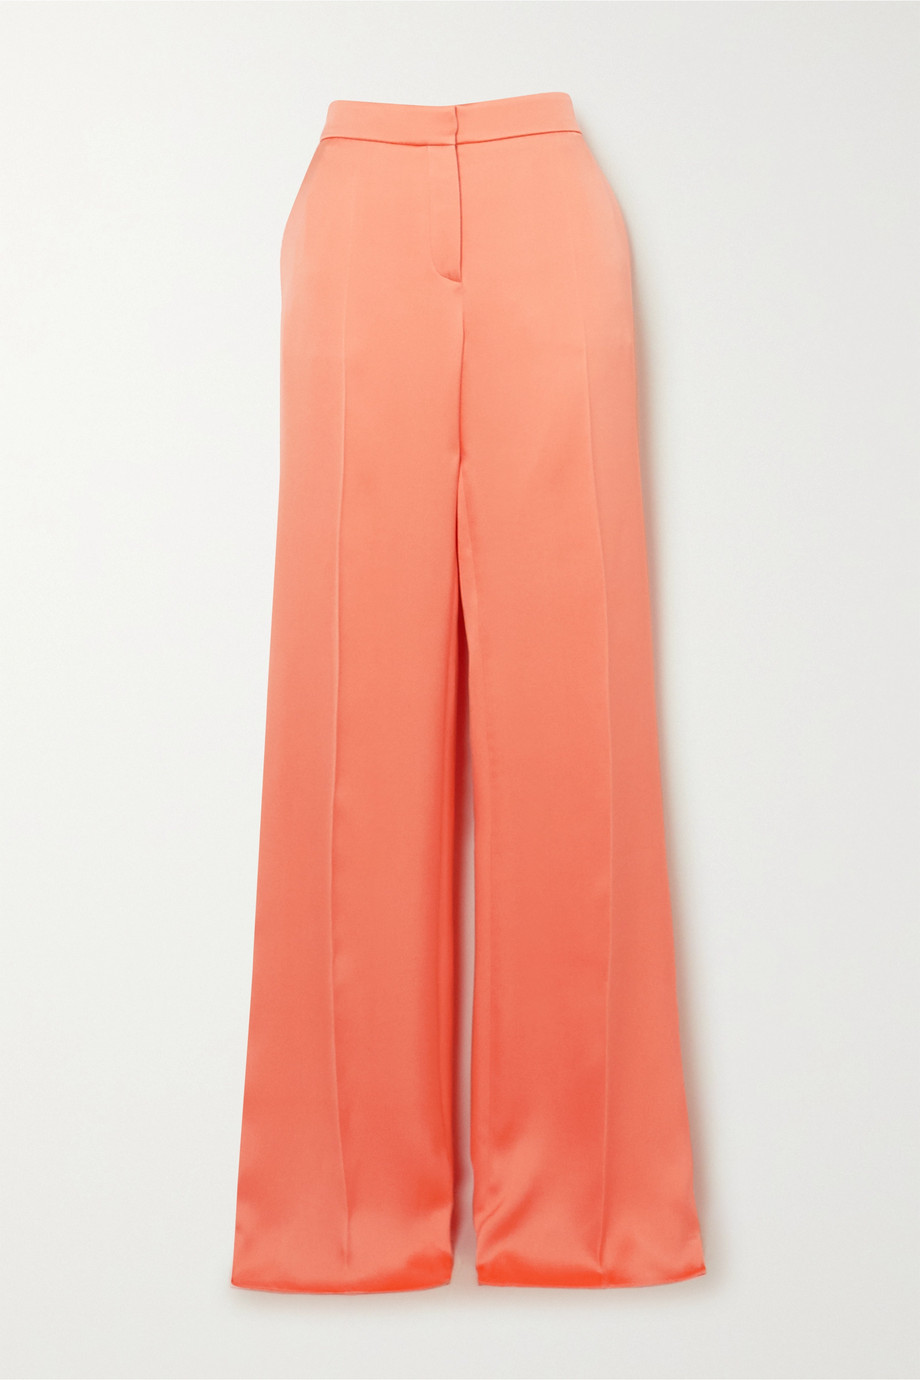 Valentino Pantalon large en satin